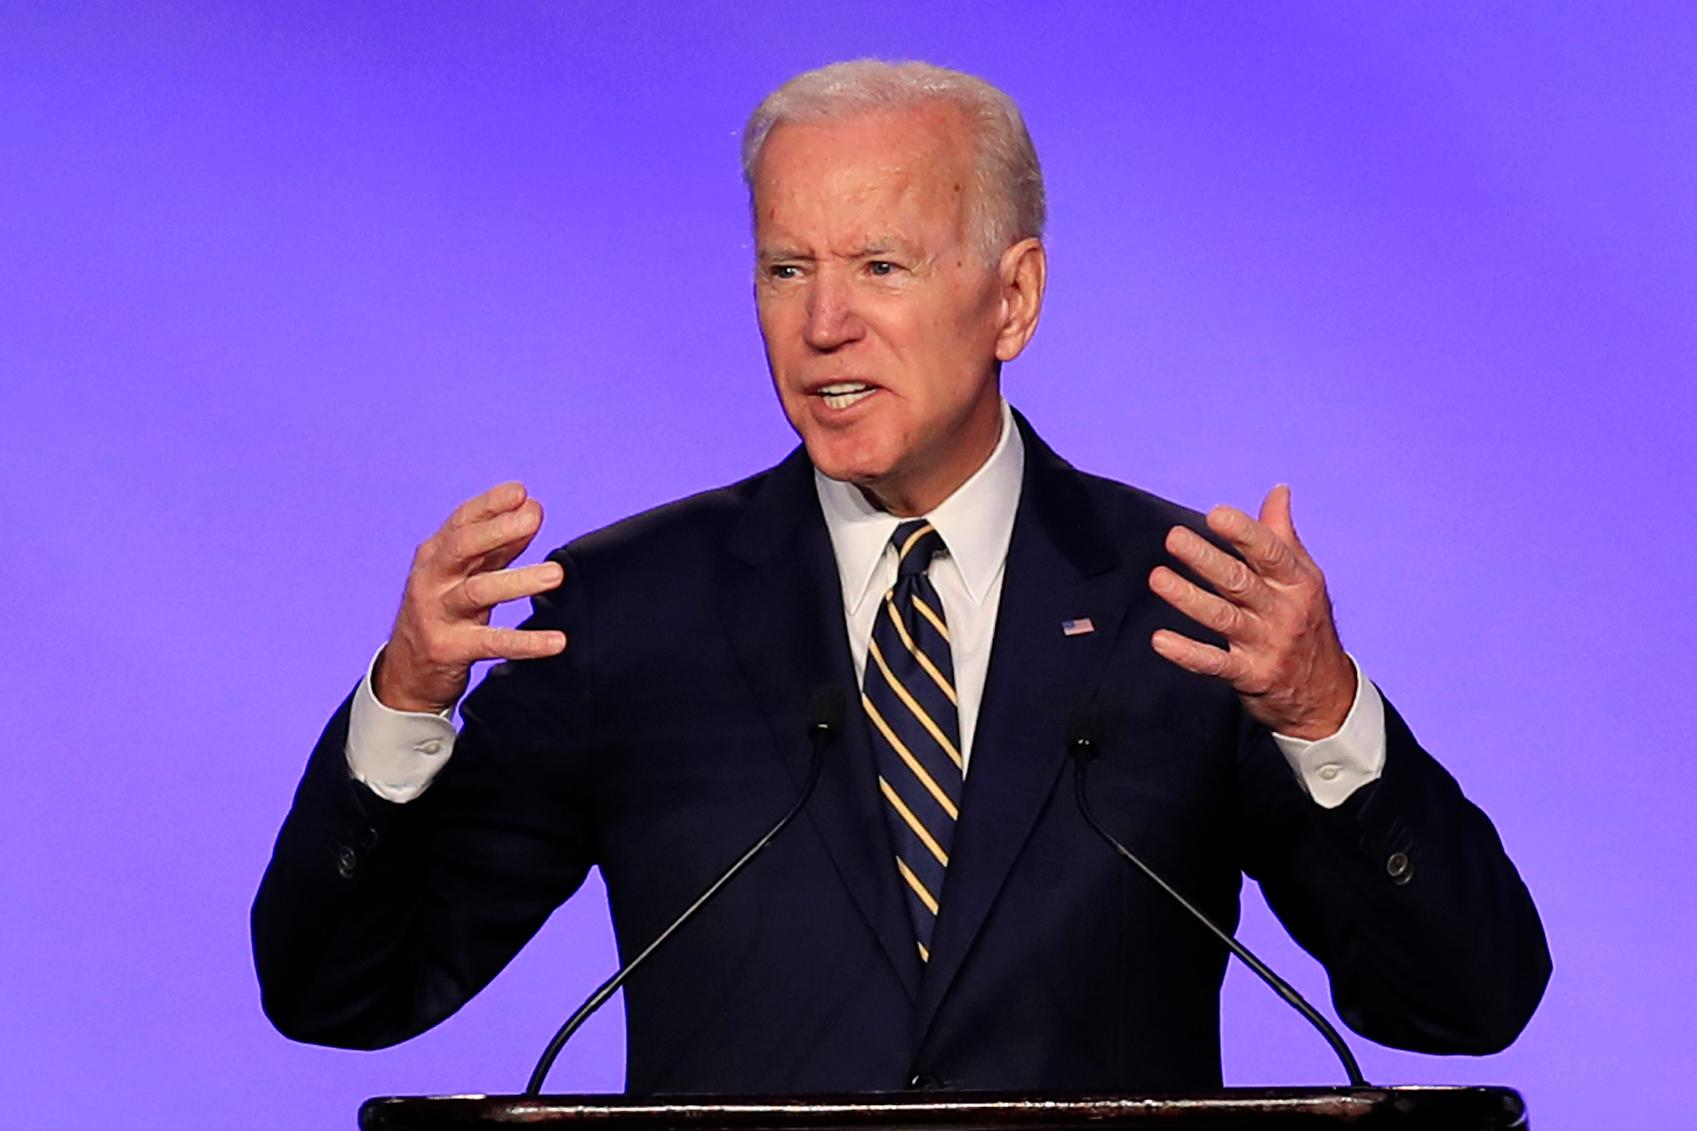 FILE - In this April 5, 2019, file photo, former Vice President Joe Biden speaks at the IBEW Construction and Maintenance Conference in Washington. (AP Photo/Manuel Balce Ceneta, File)